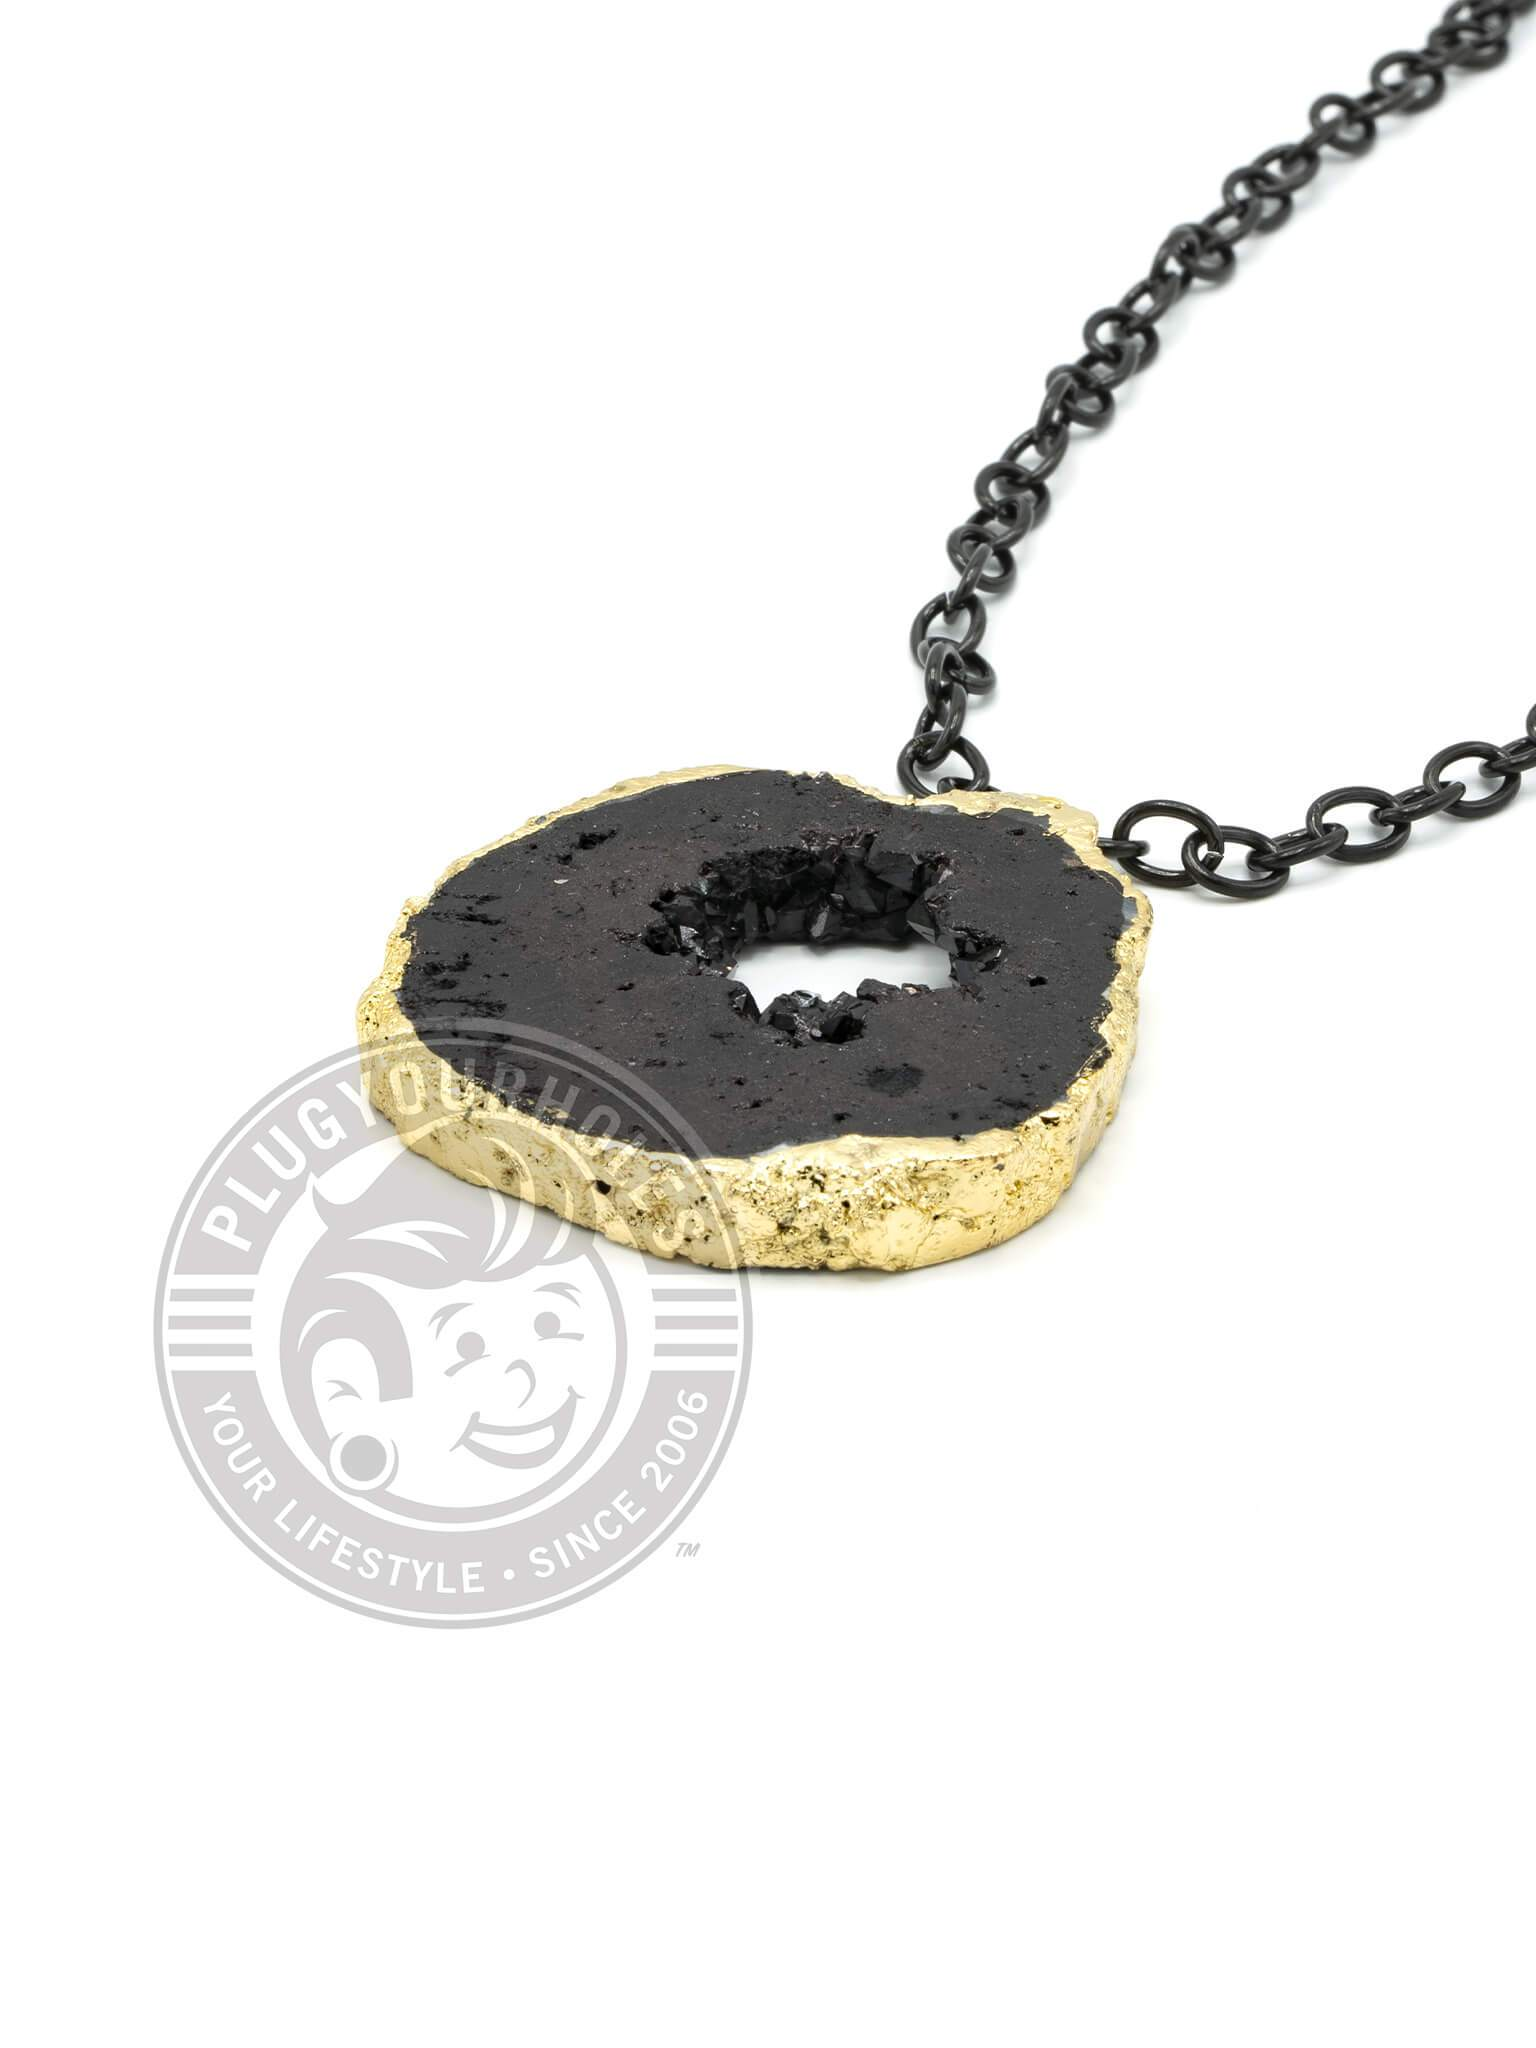 Black Crystalized Geode Slice Necklace